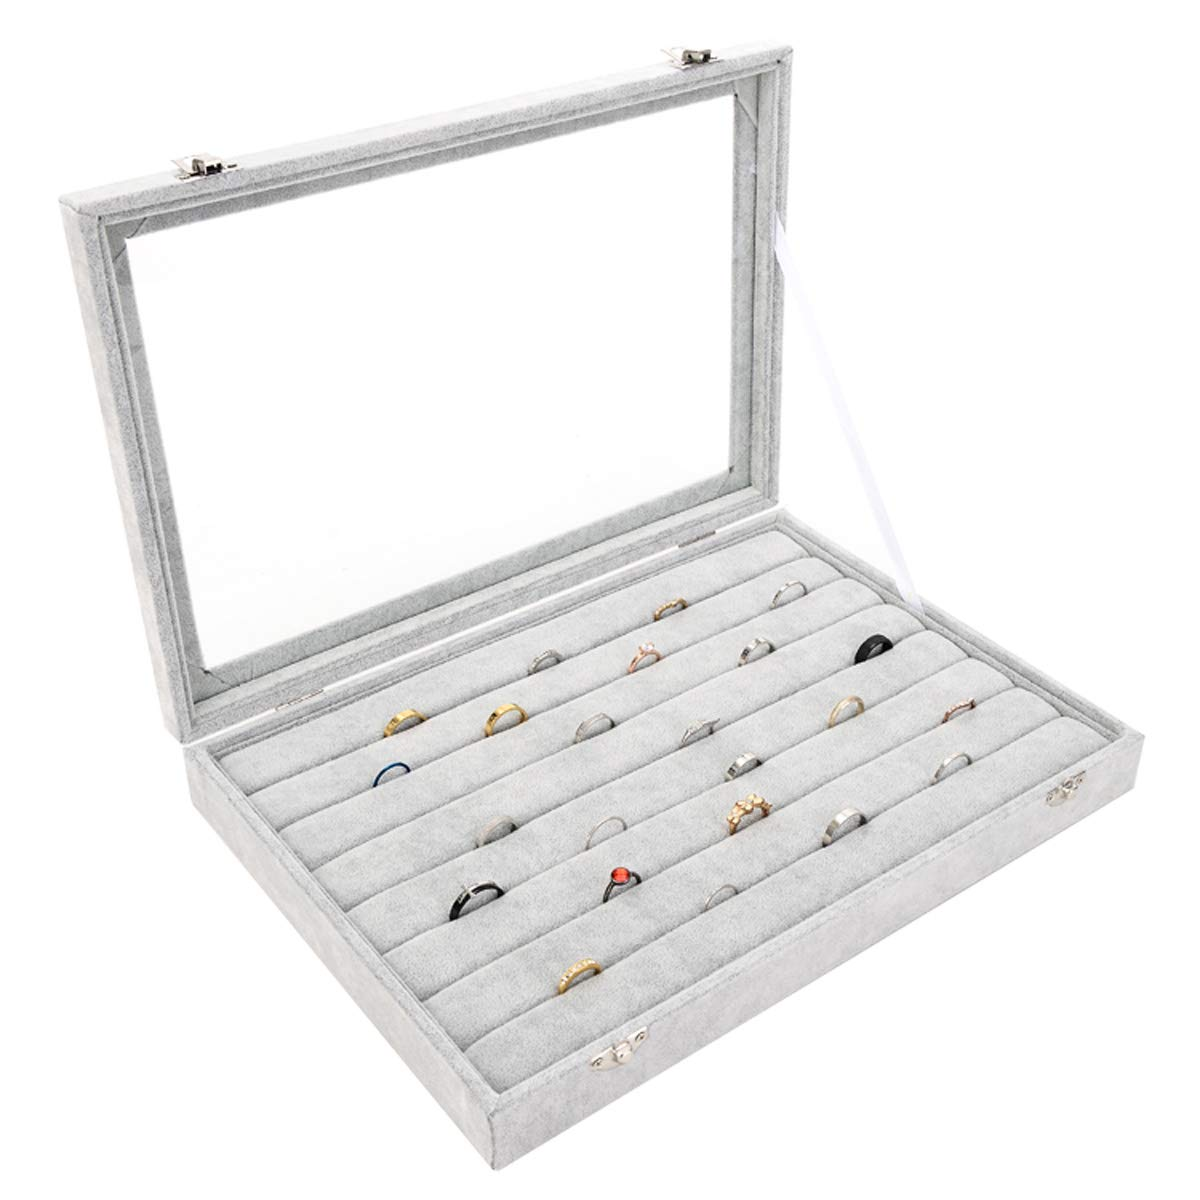 Autoark Ice Velvet Clear Lid 7 Slots Jewelry Rings Earrings Tray Showcase Display Organizer,AJ-023